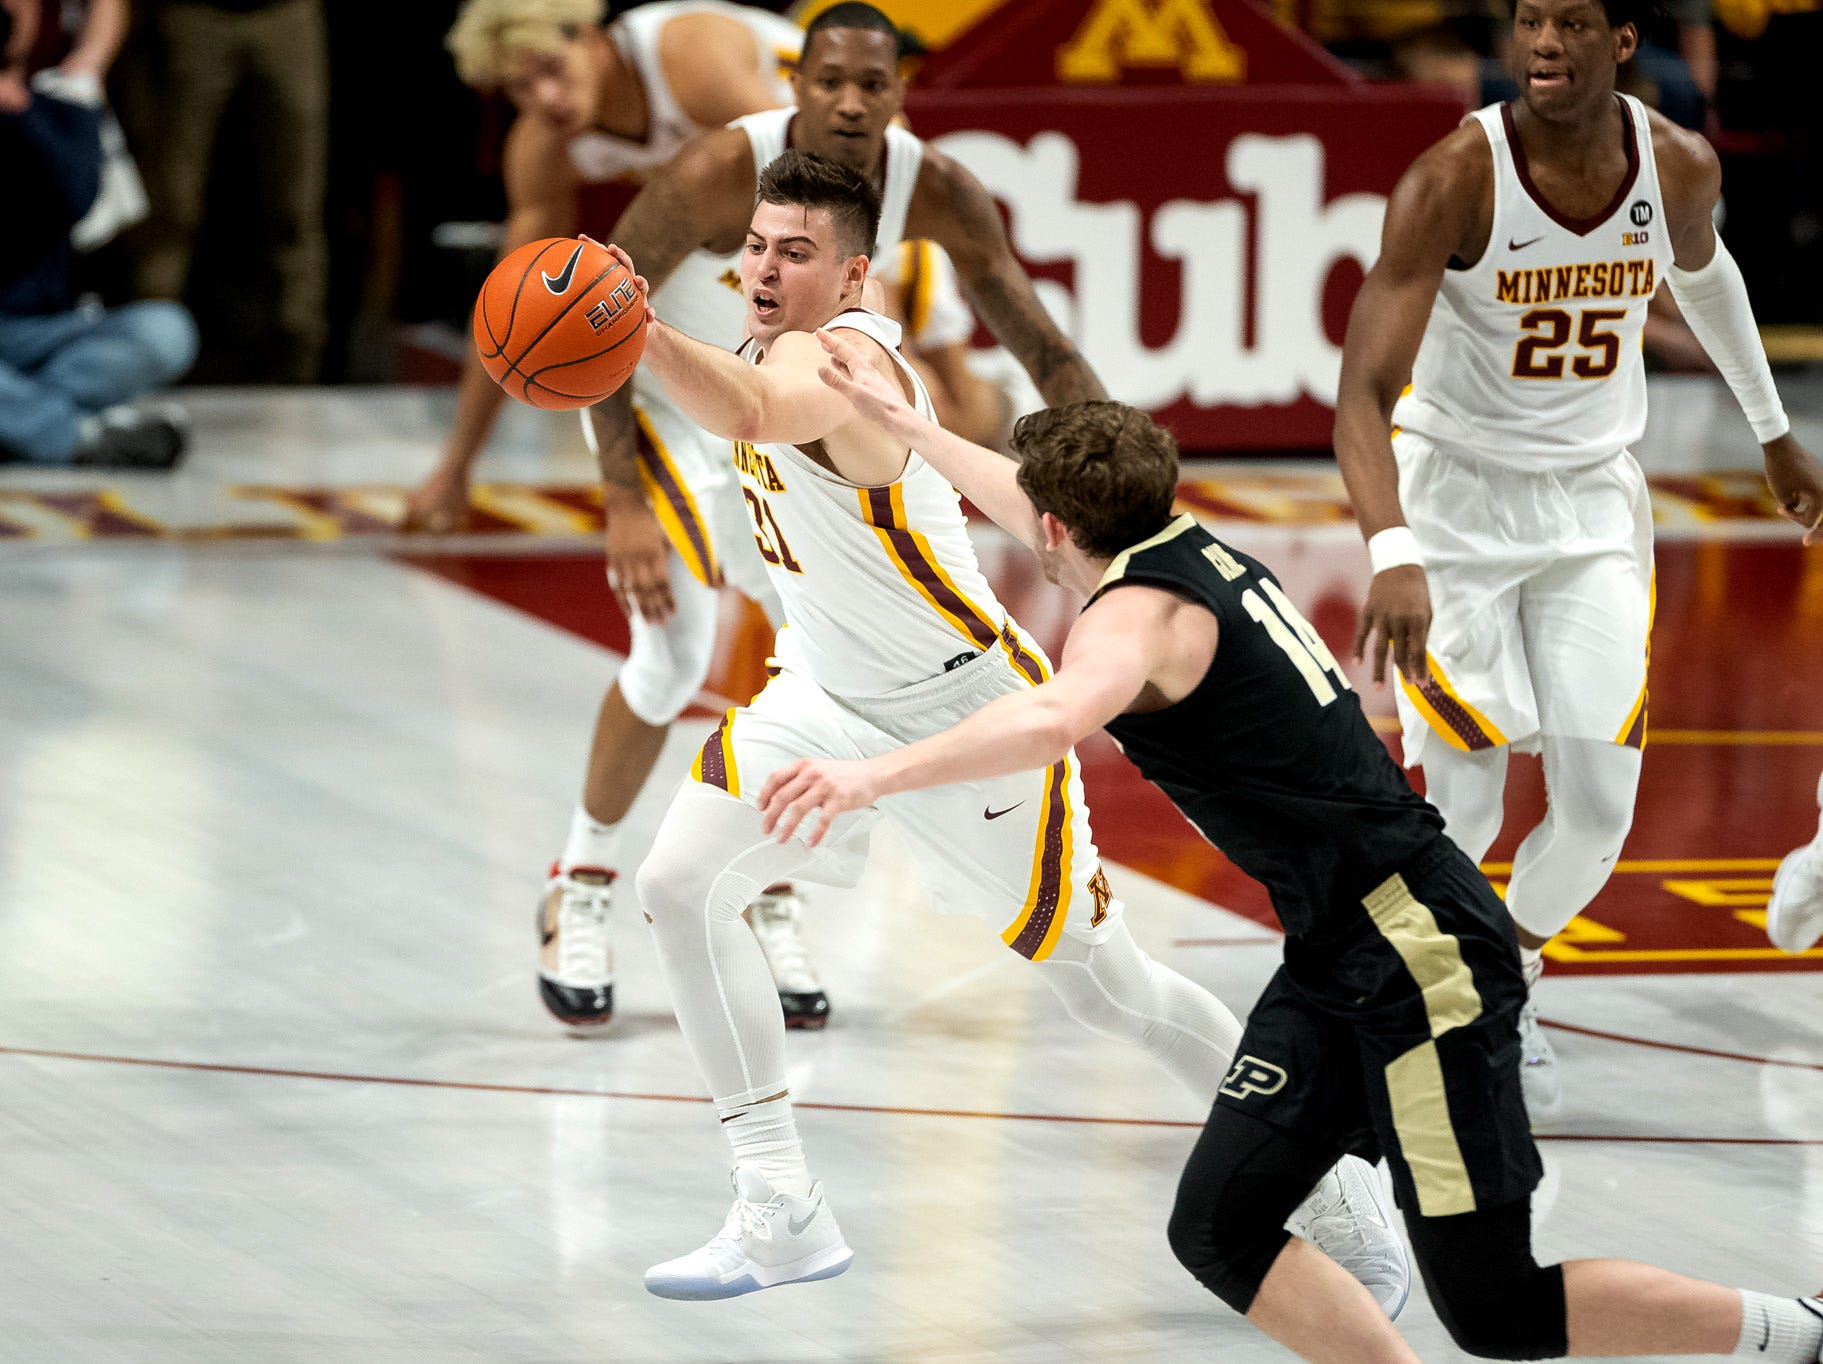 Mar 5, 2019; Minneapolis, MN, USA; Minnesota Gophers guard Brock Stull (31) and Purdue Boilermakers guard Ryan Cline (14) fight for the ball during the first half at Williams Arena. Mandatory Credit: Harrison Barden-USA TODAY Sports